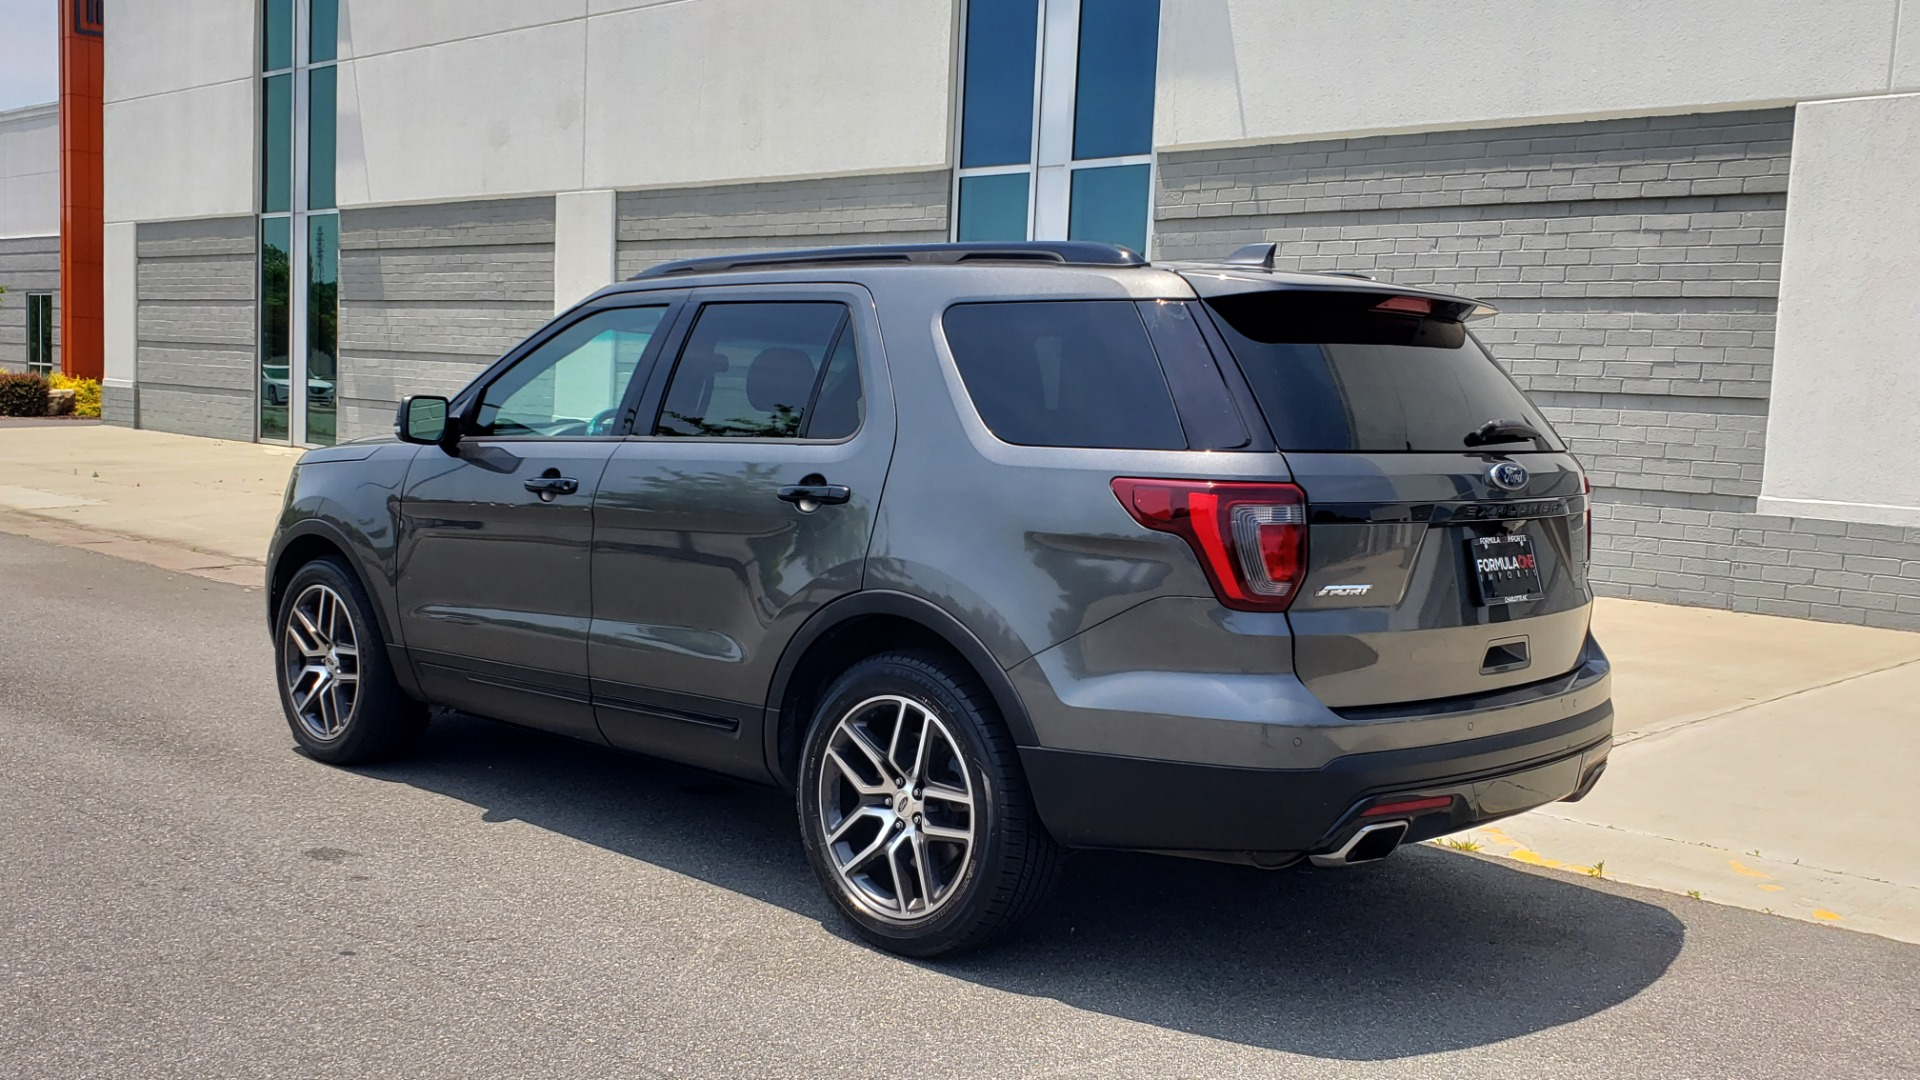 Used 2016 Ford EXPLORER SPORT 4WD / 3.5L ECOBOOST / 6-SPD AUTO / BSM / REARVIEW for sale Sold at Formula Imports in Charlotte NC 28227 6